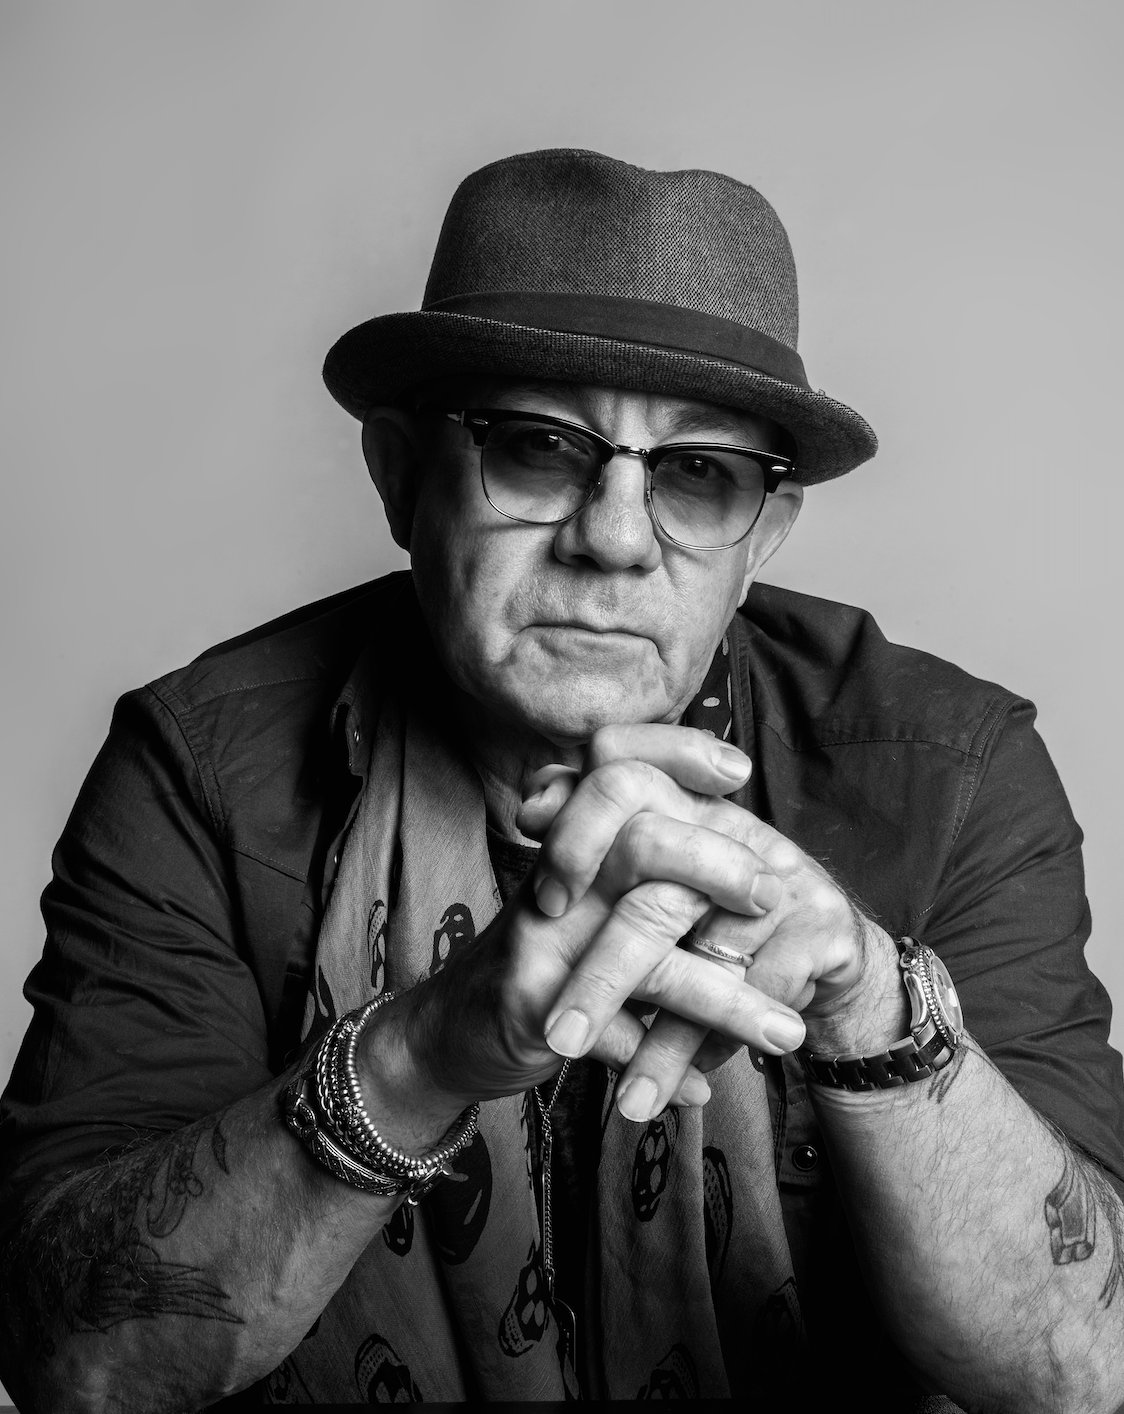 Happy Birthday Bernie Taupin!  Born on this day in 1950.